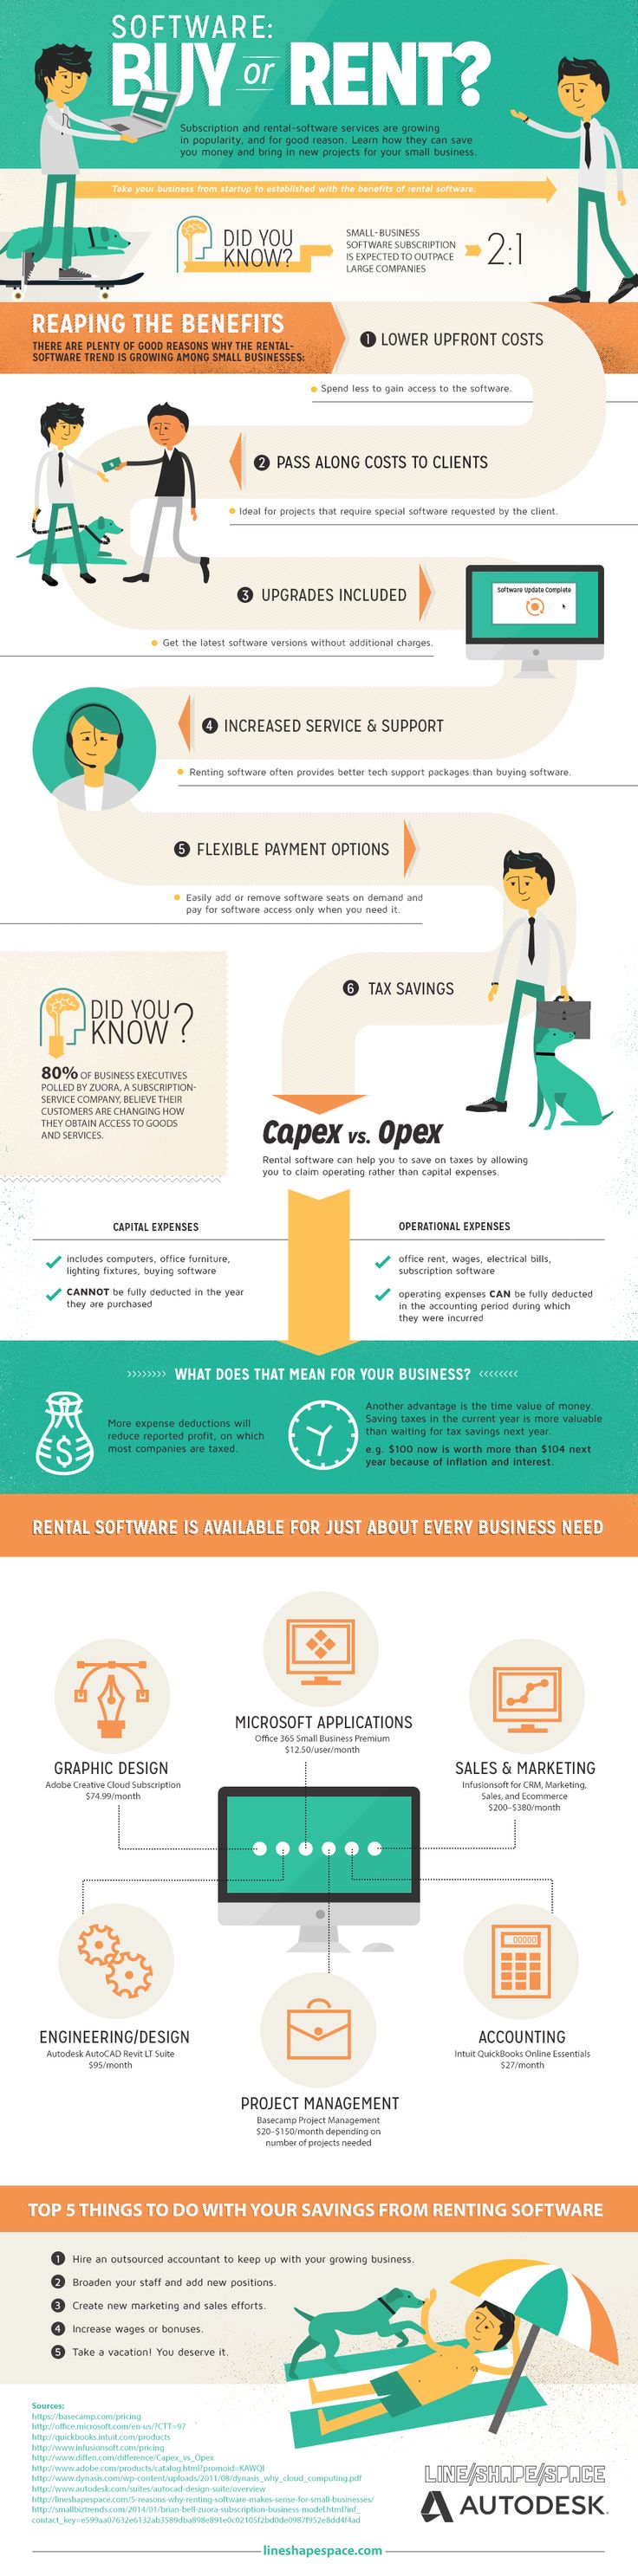 Software Buy Or Rent [Infographic] | Latest Infographics ...